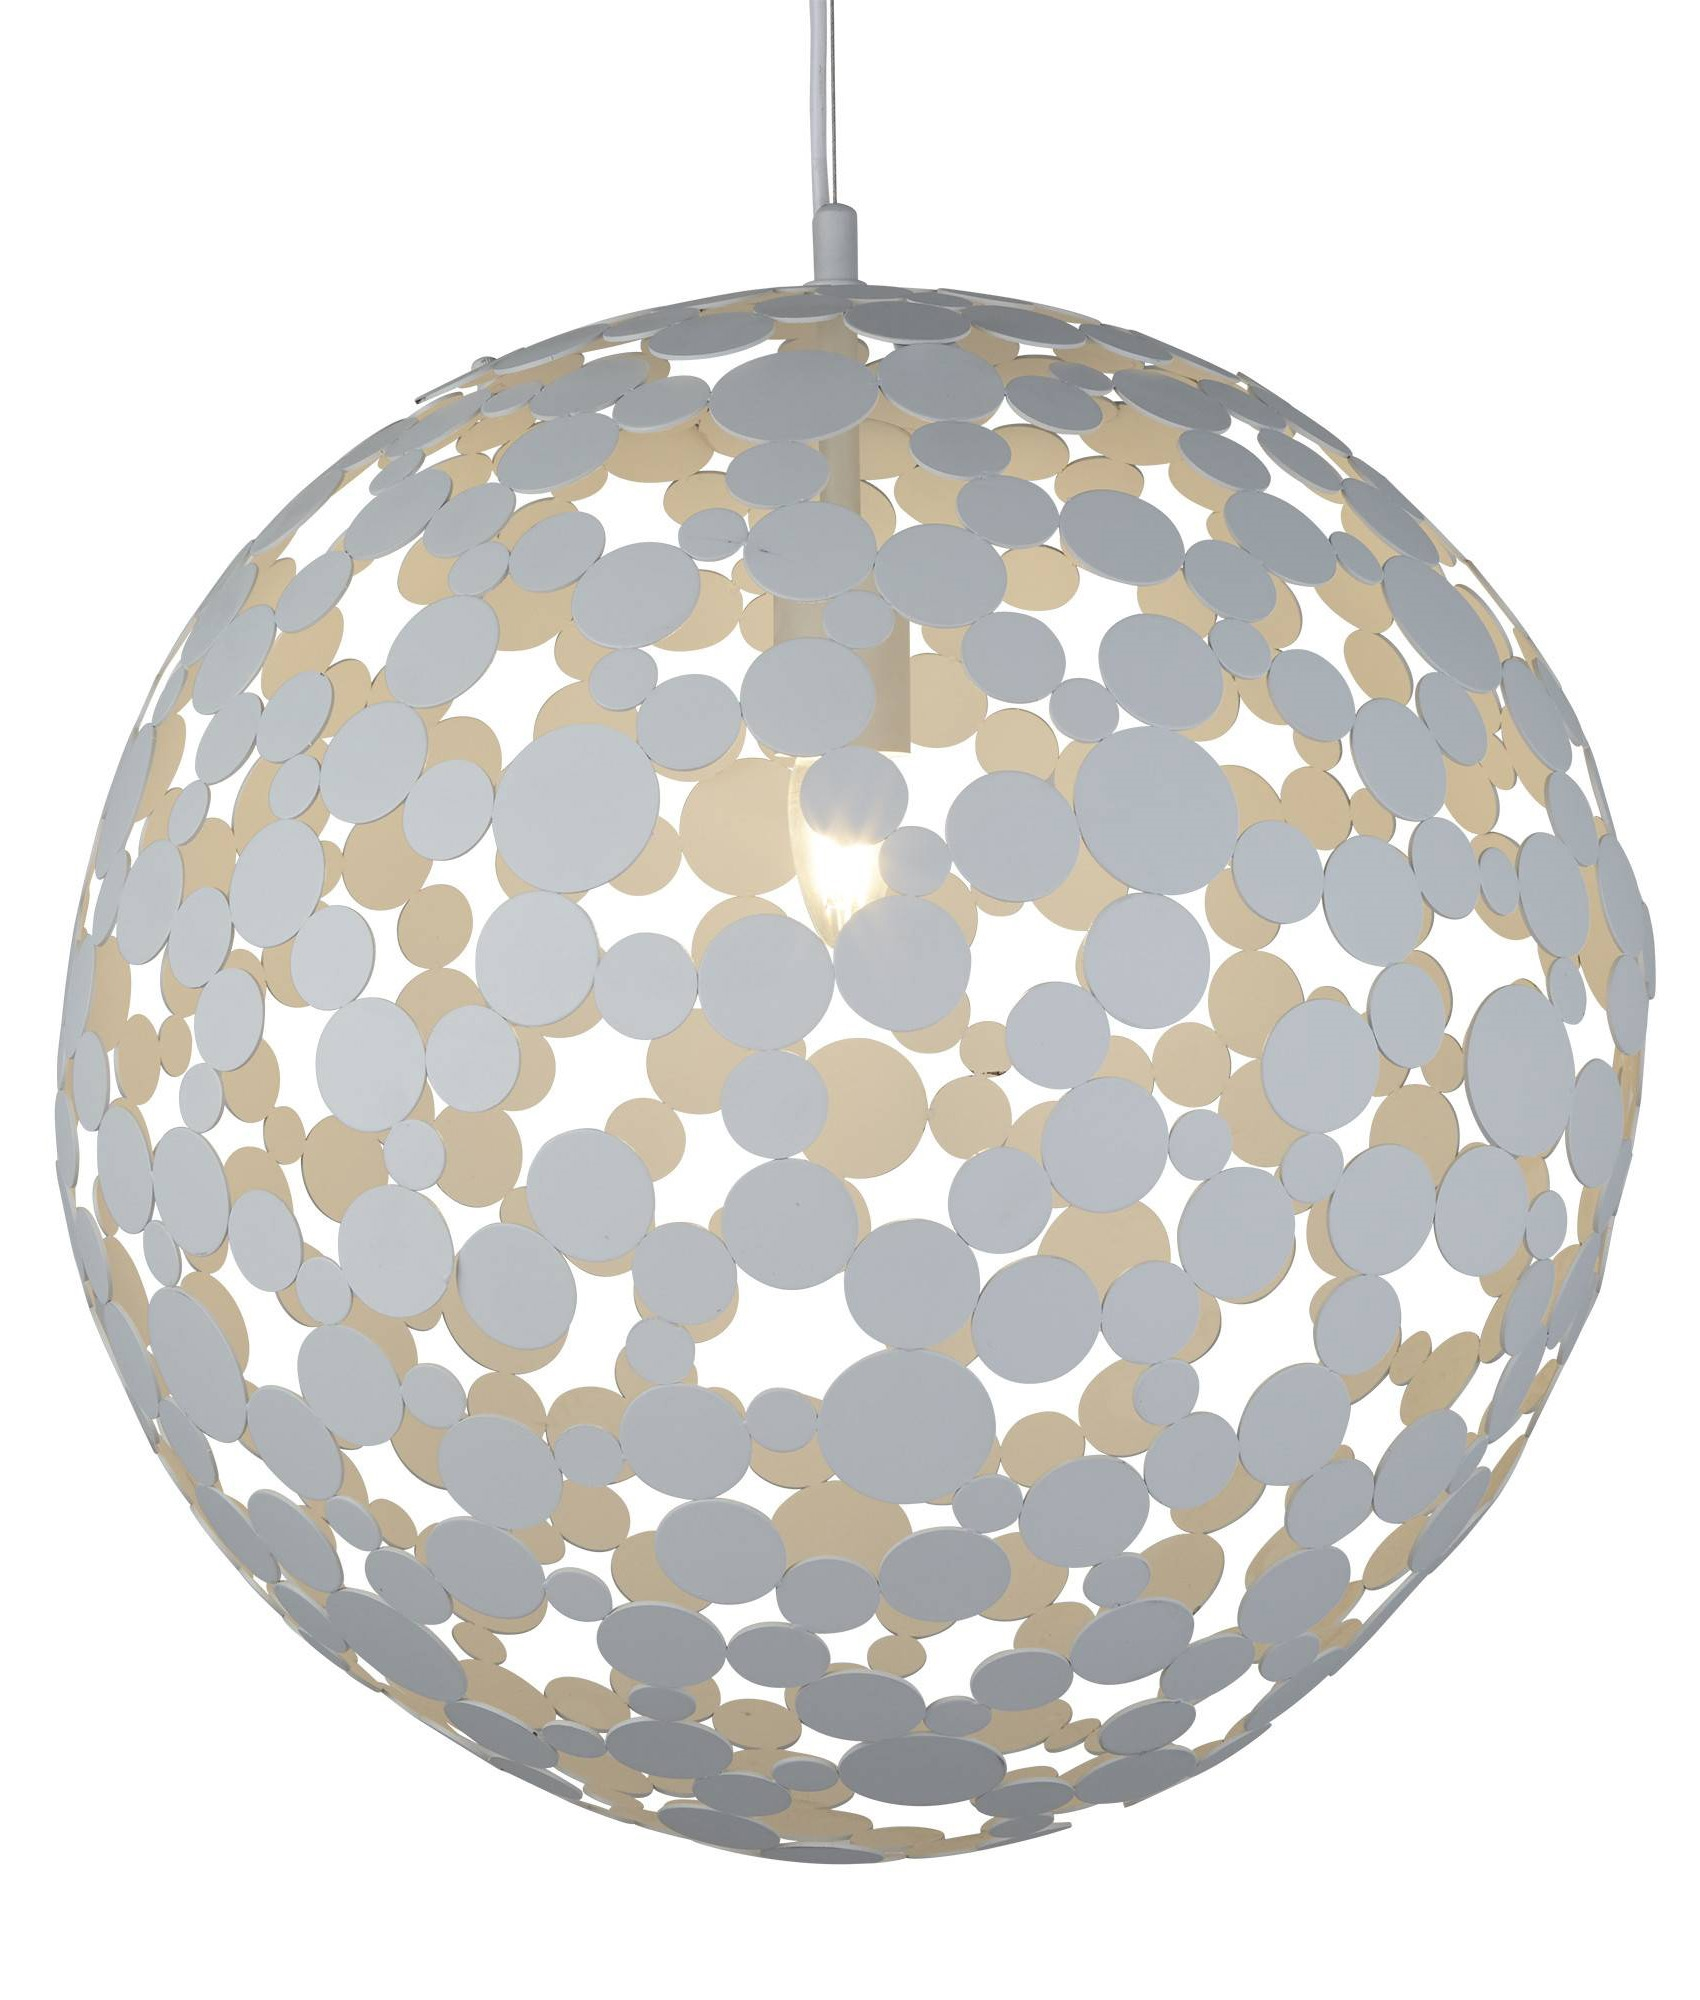 Large Globe Pendant With Cut Out Circle Detailing